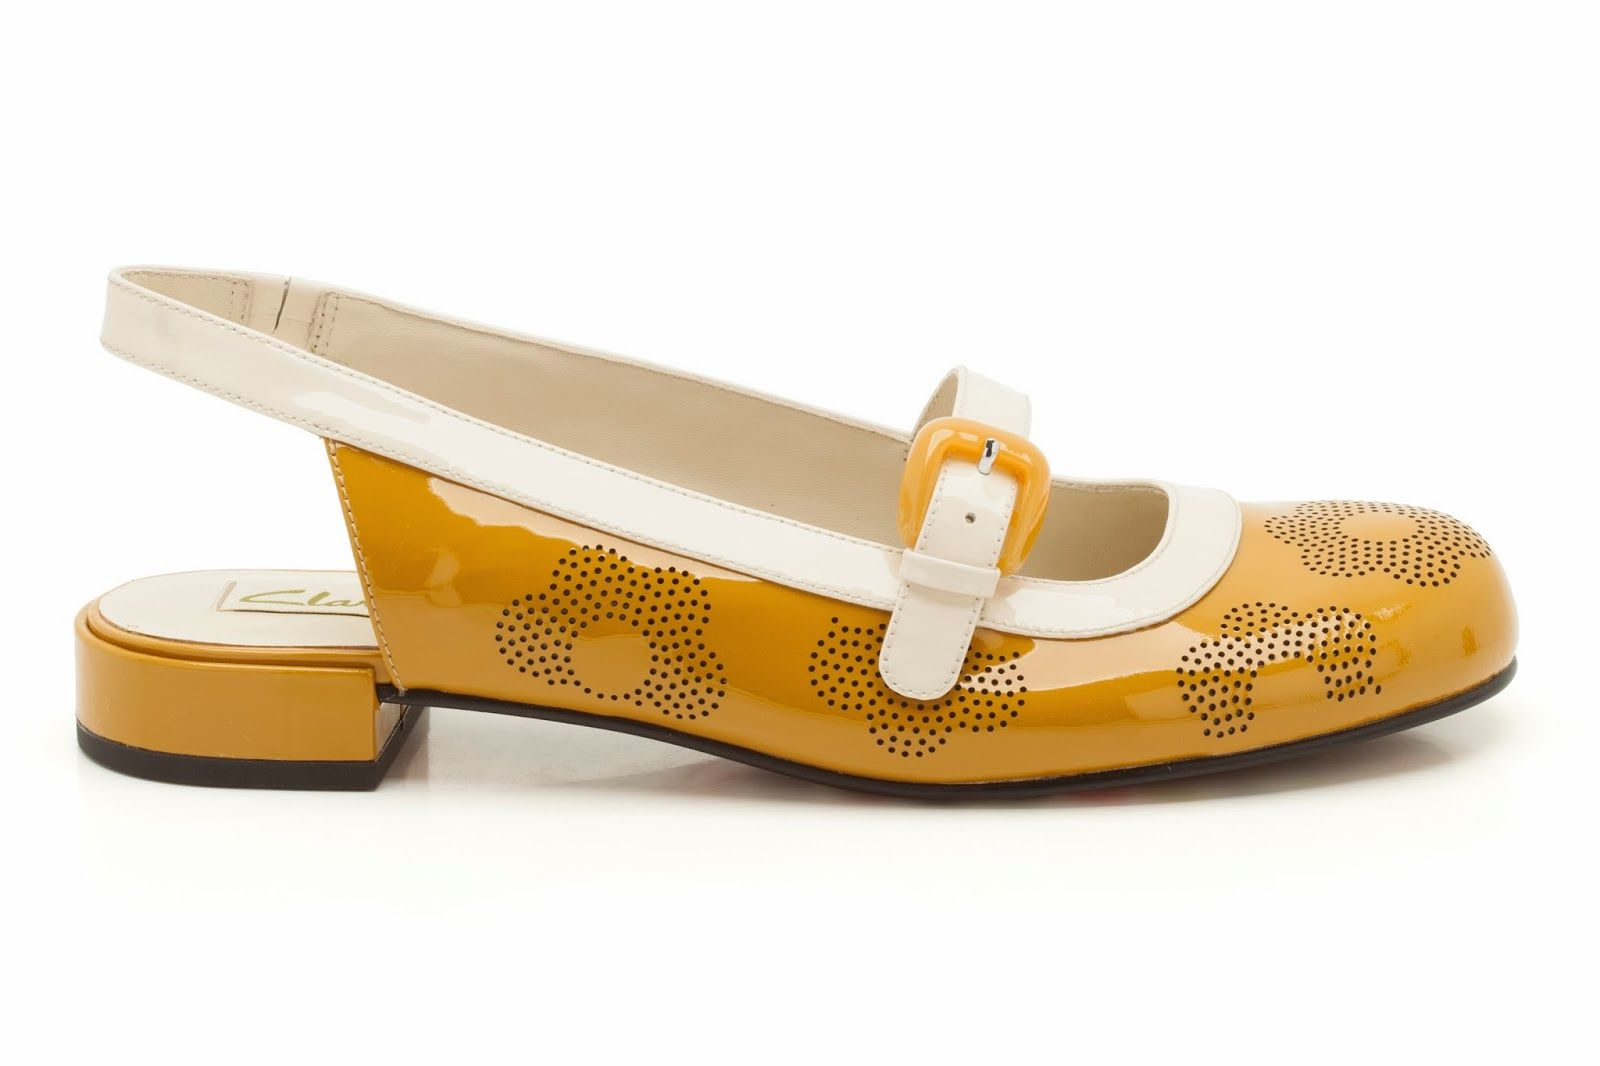 Womens Smart Shoes - Orla Milly in Mustard Yellow from Clarks shoes